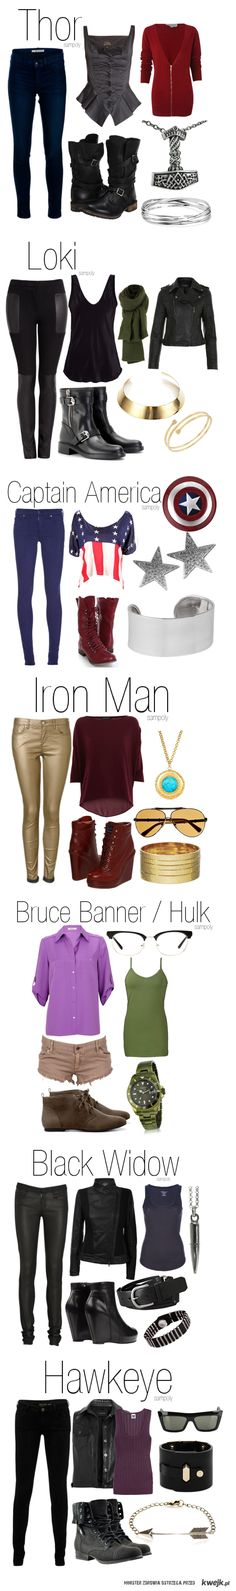 Love the Hulk and Thor outfits!#Repin By:Pinterest++ for iPad#